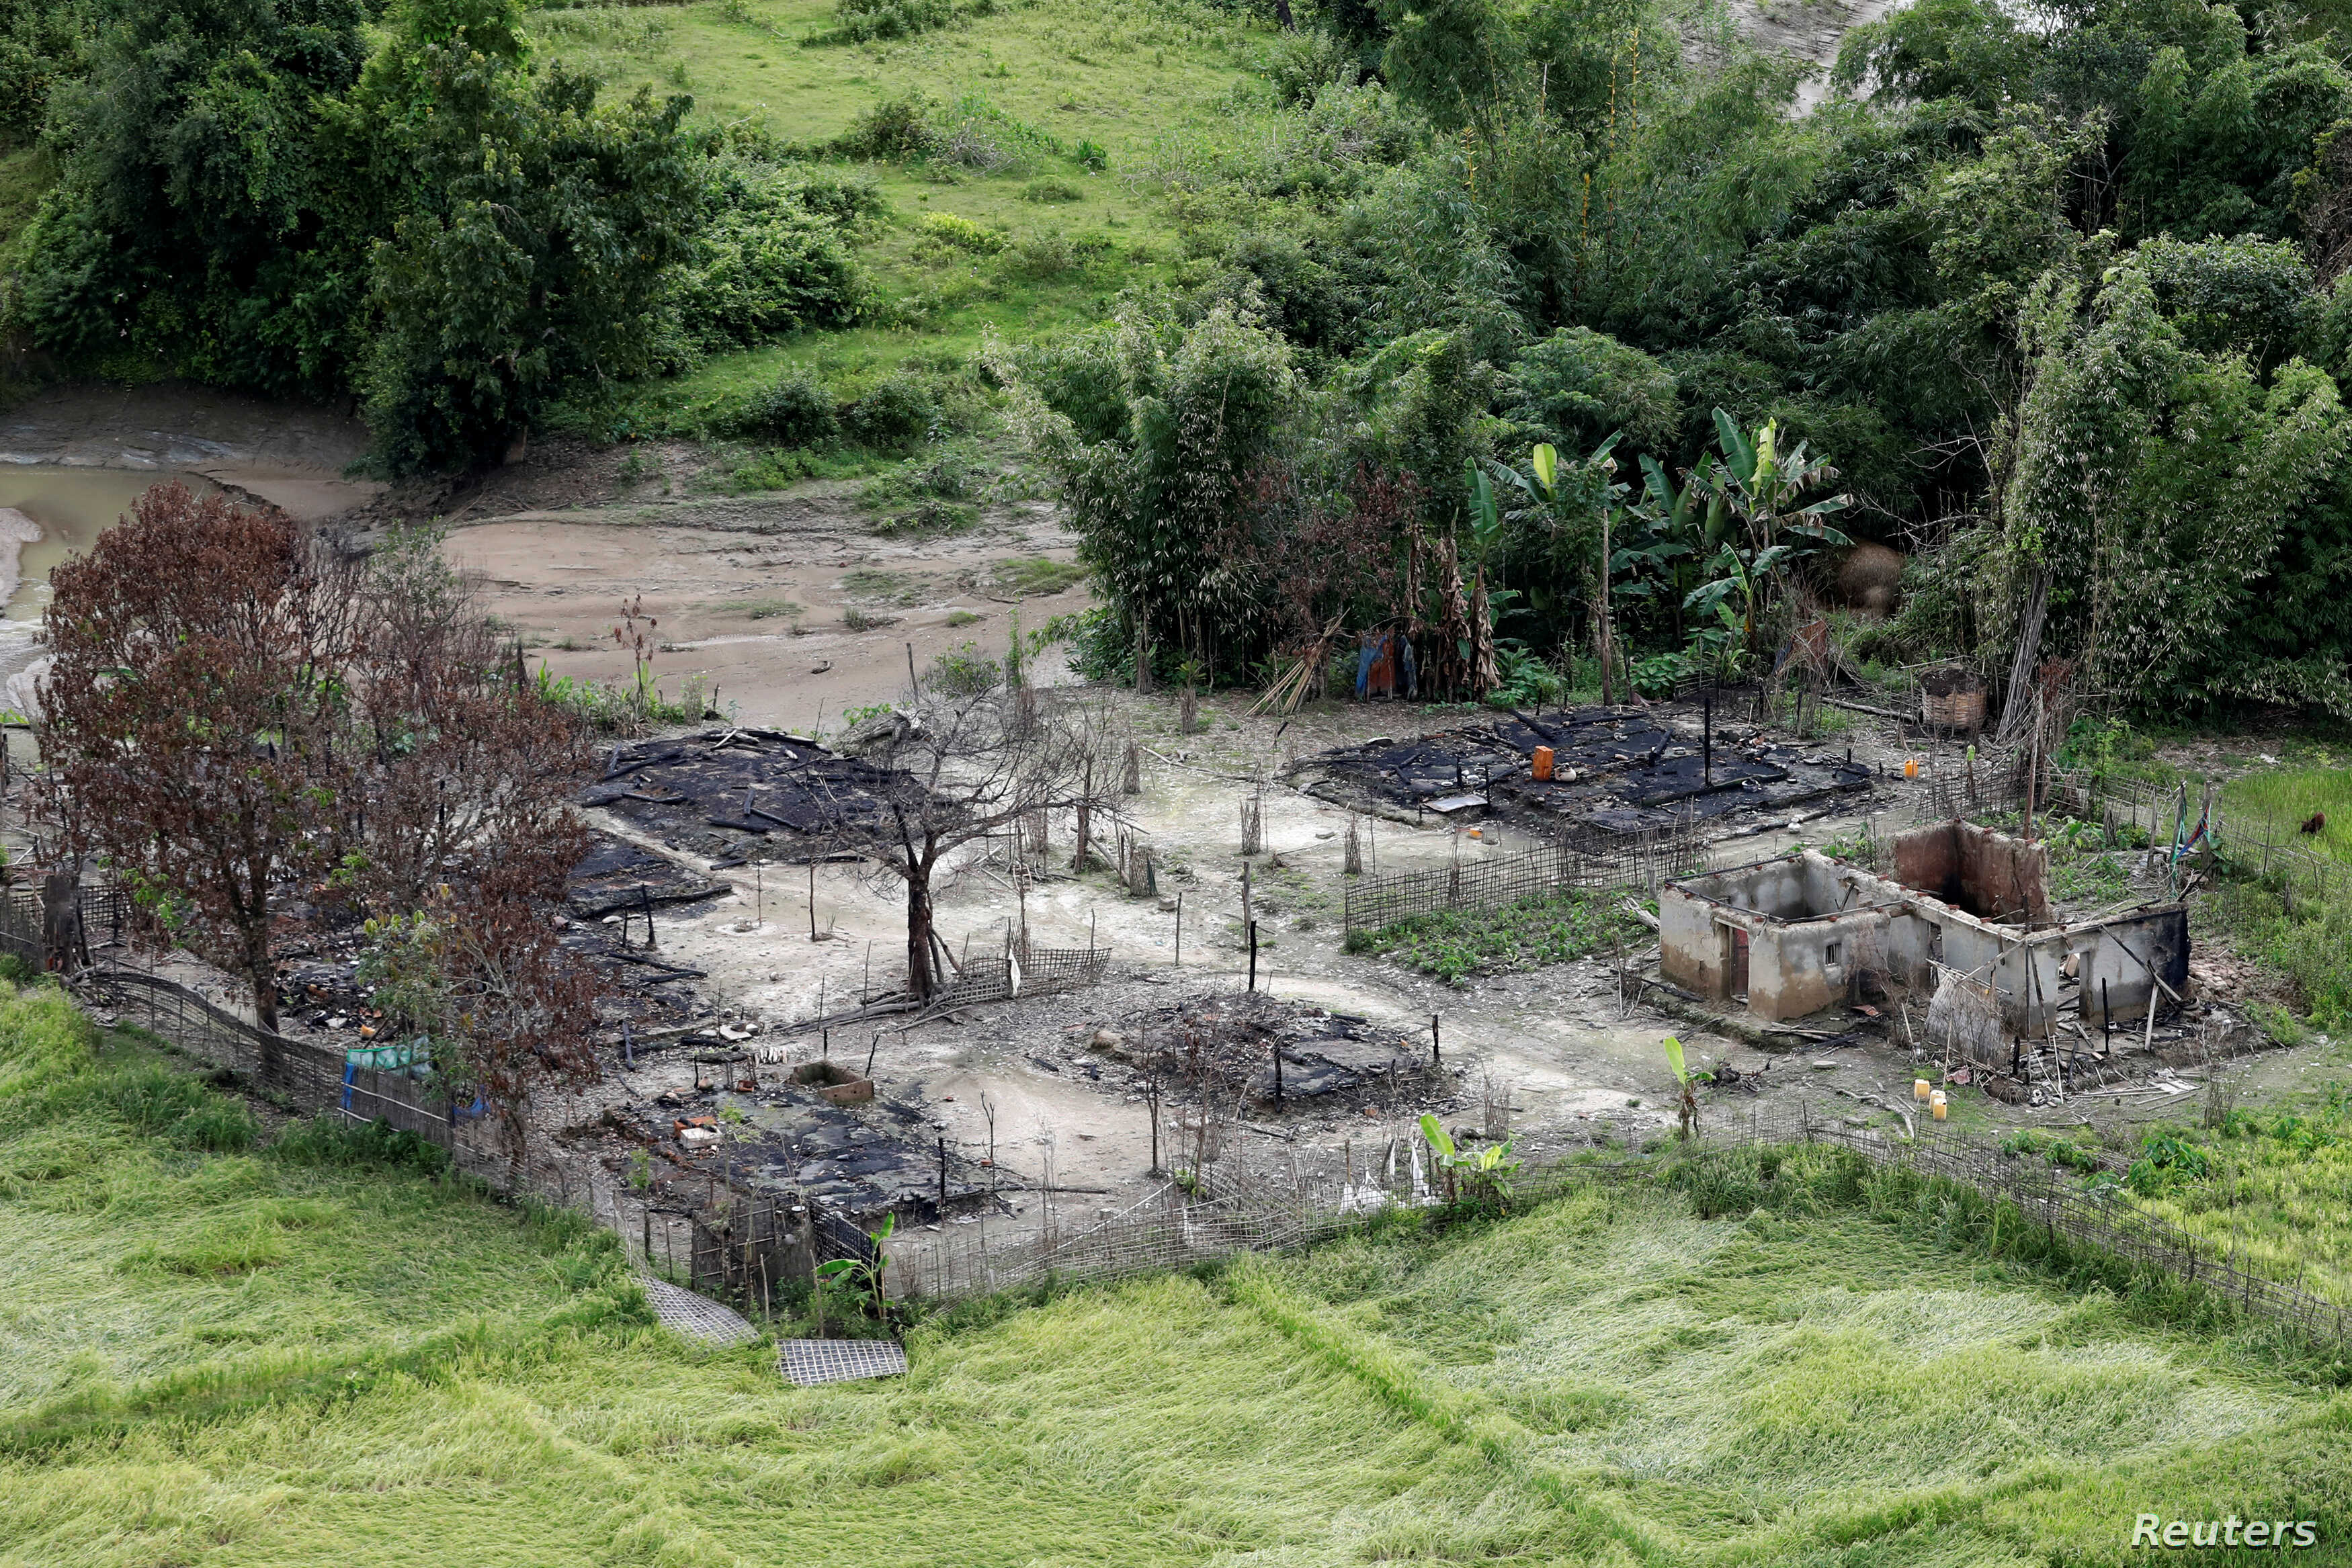 An aerial view of a burned Rohingya village near Maungdaw, north of Rakhine state, Myanmar Sept. 27, 2017.